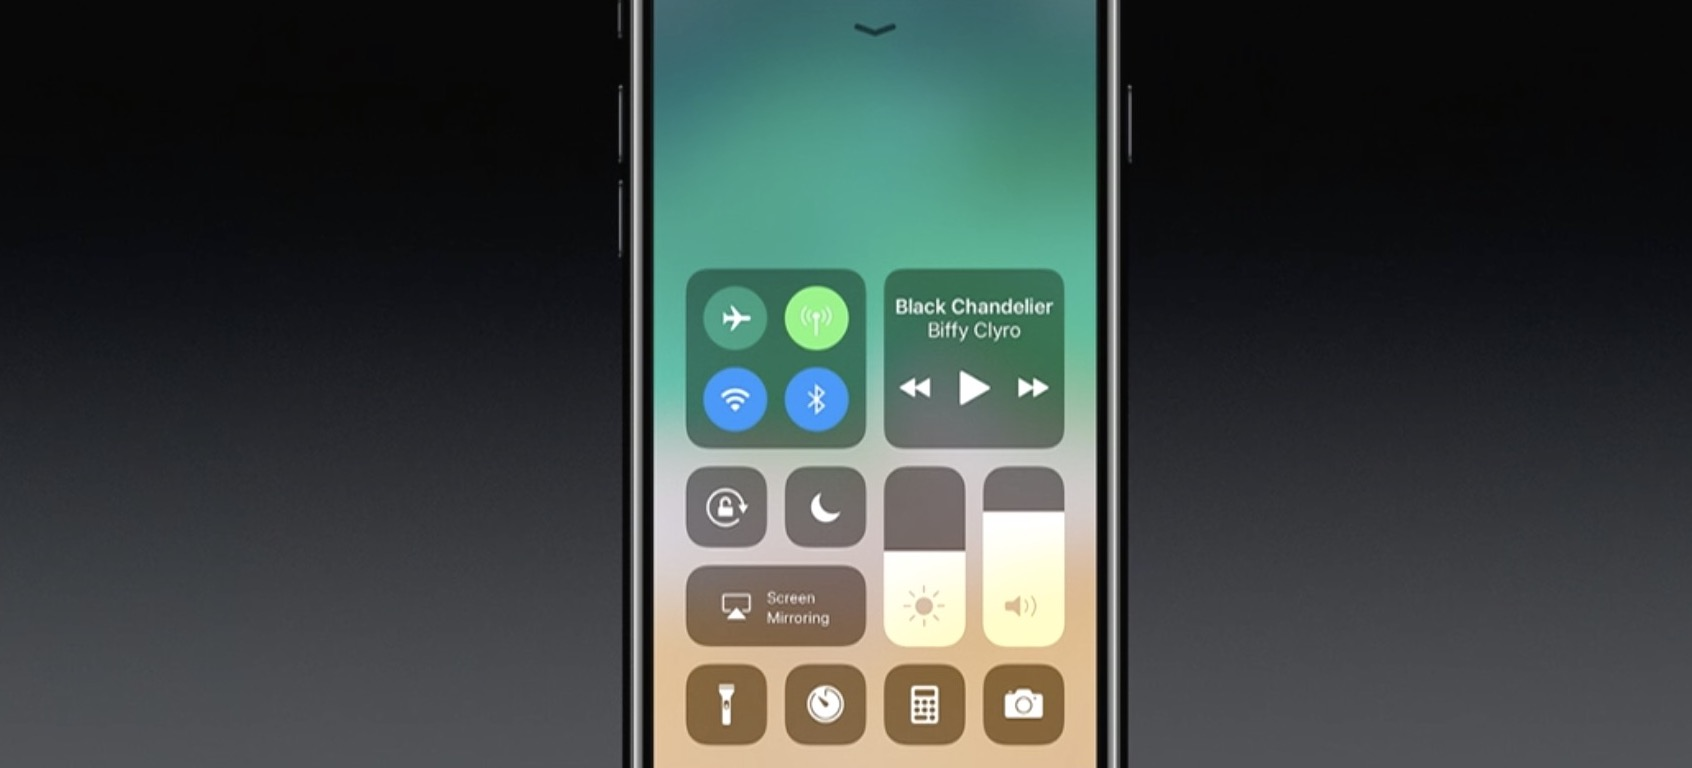 Apple clarifies why iOS 11 Control Center toggles don't